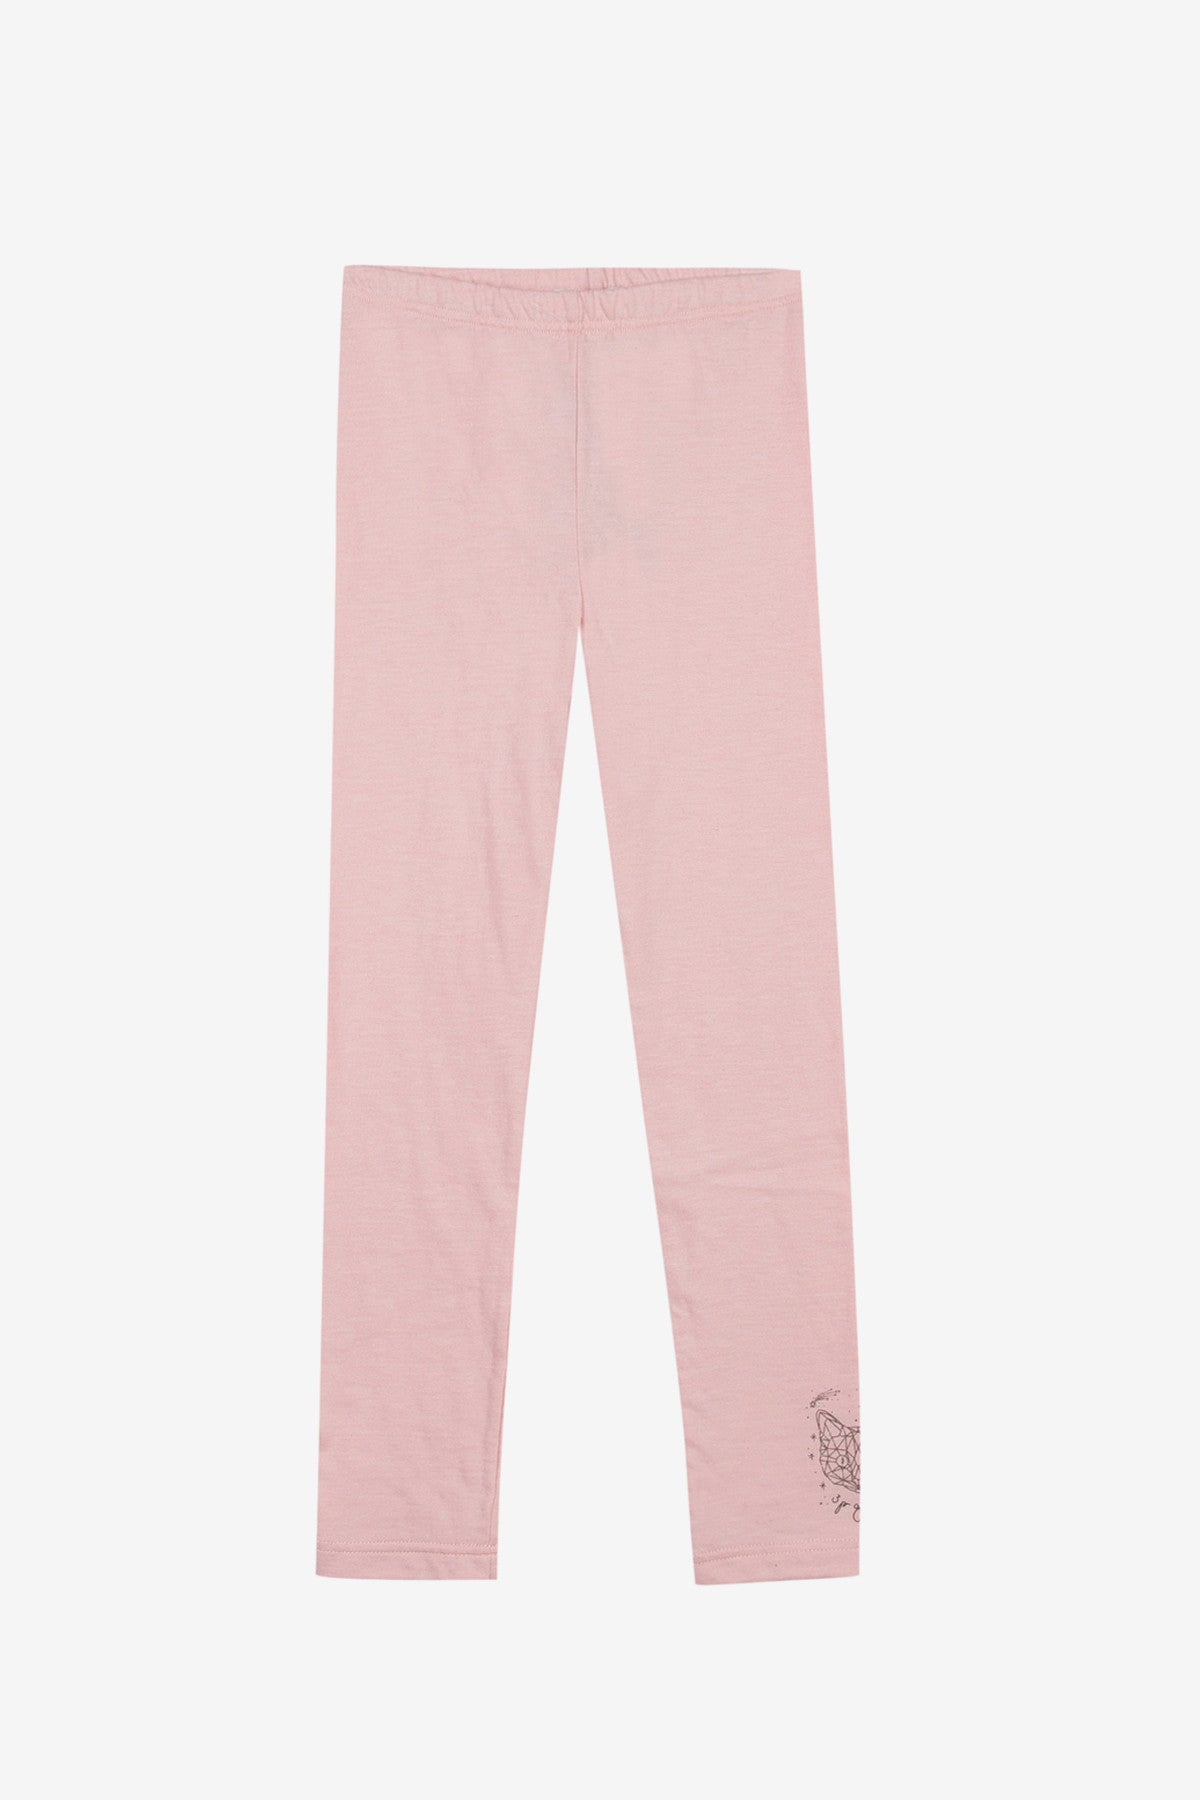 3pommes Basic Pink Legging